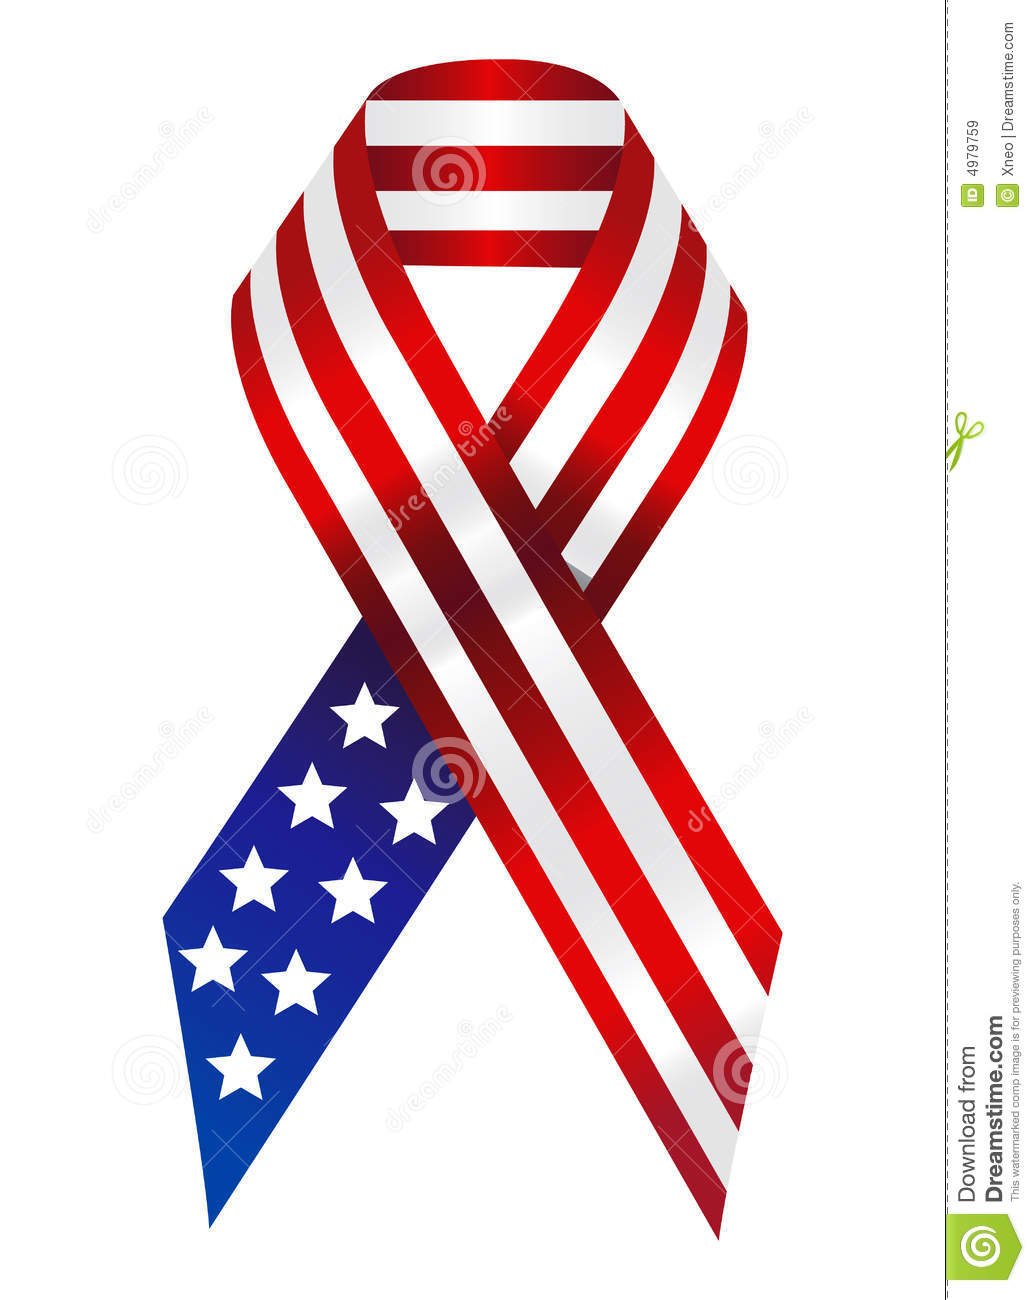 American Ribbon Royalty Free Stock Images - Image: 4979759